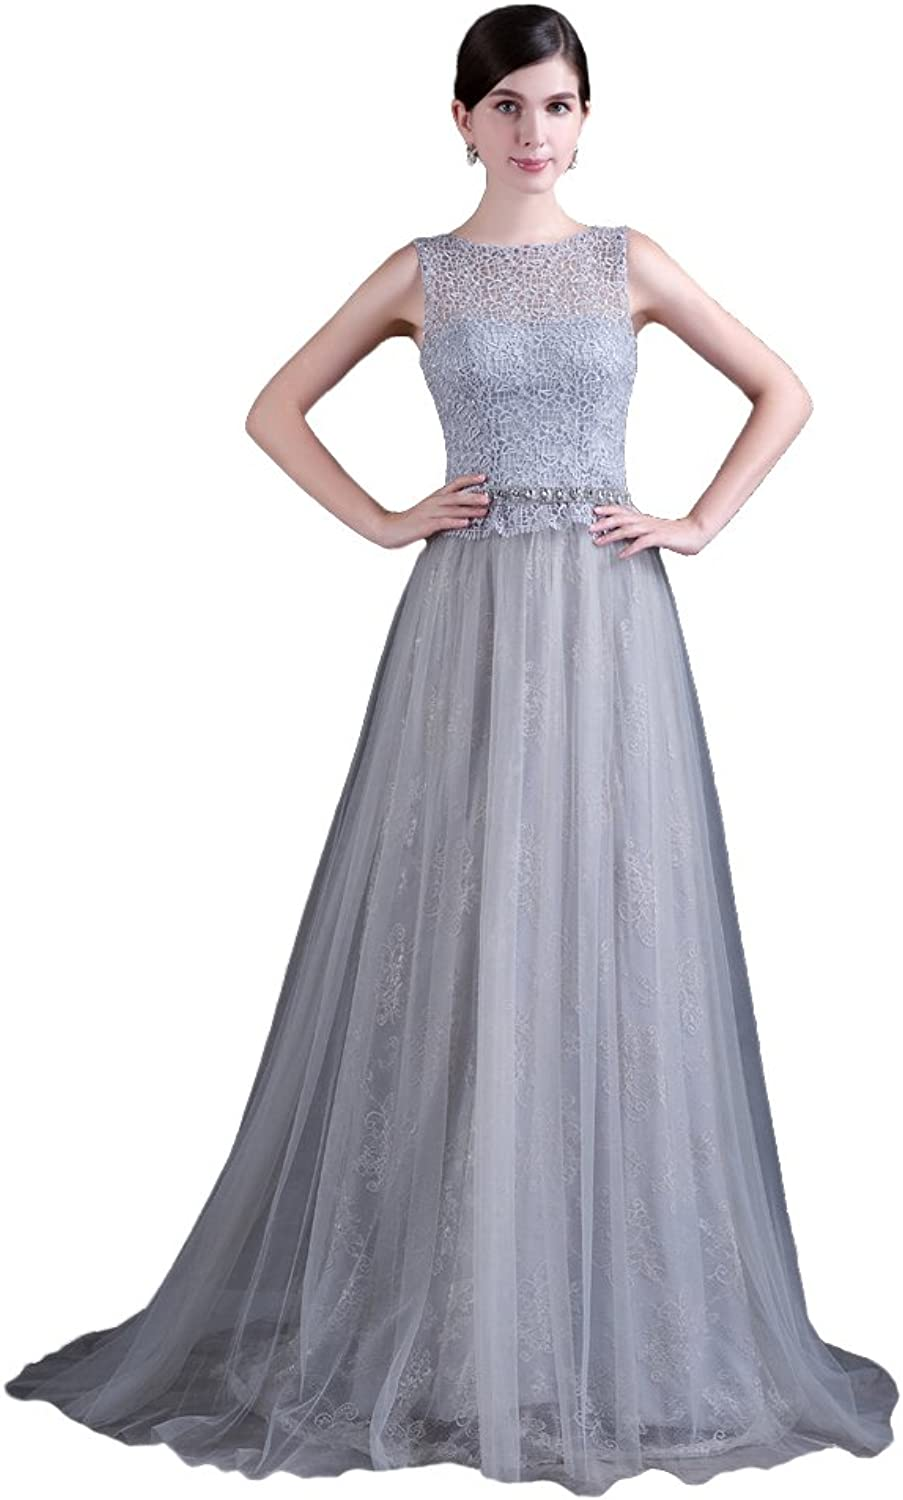 YSFS Women's Lace Aline Long Evening Prom Dresses Gowns